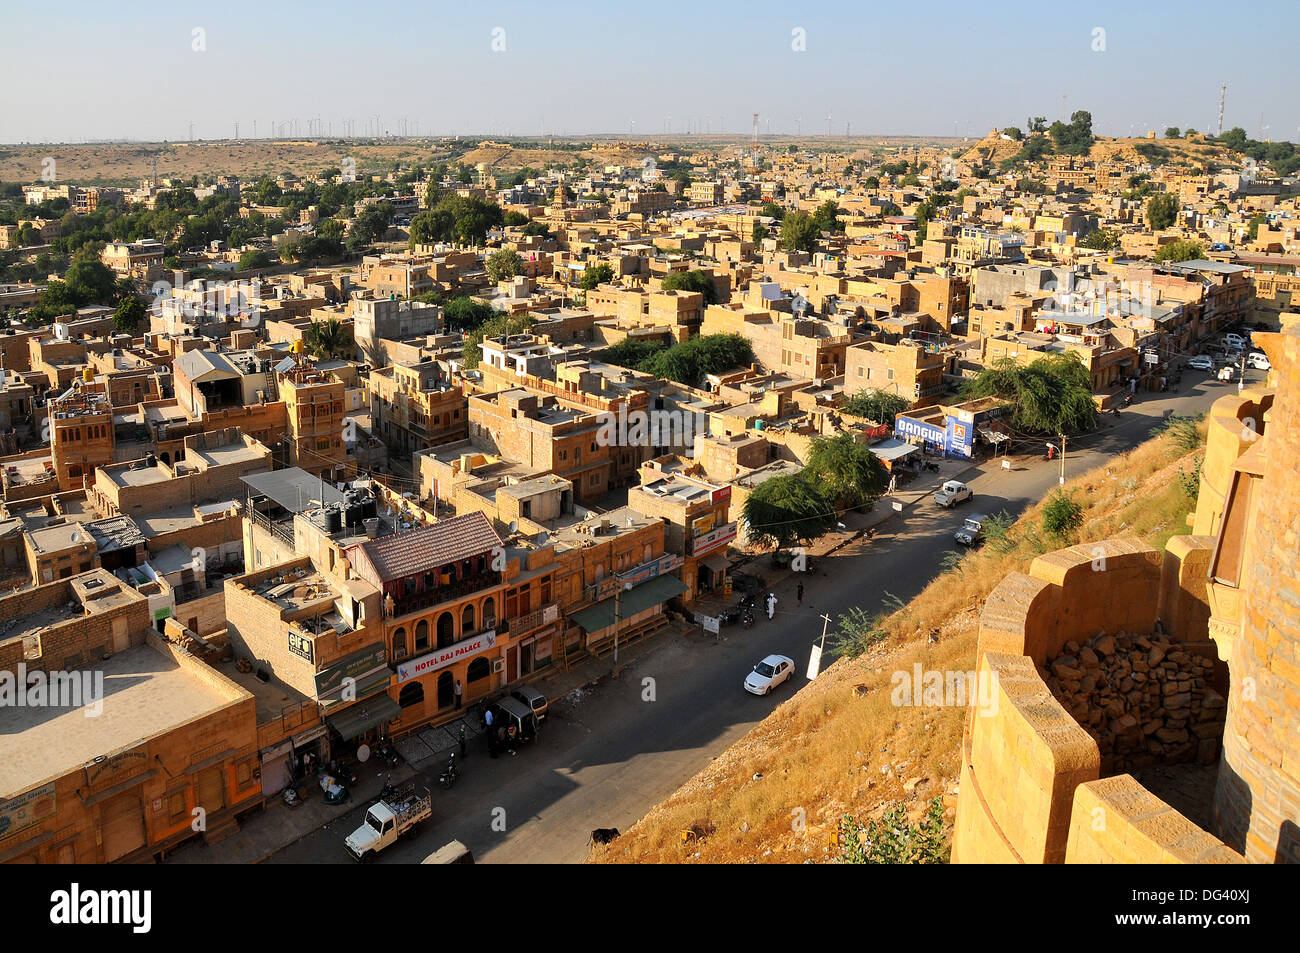 View from the fortifications, Jaisalmer, Rajasthan, India, Asia - Stock Image